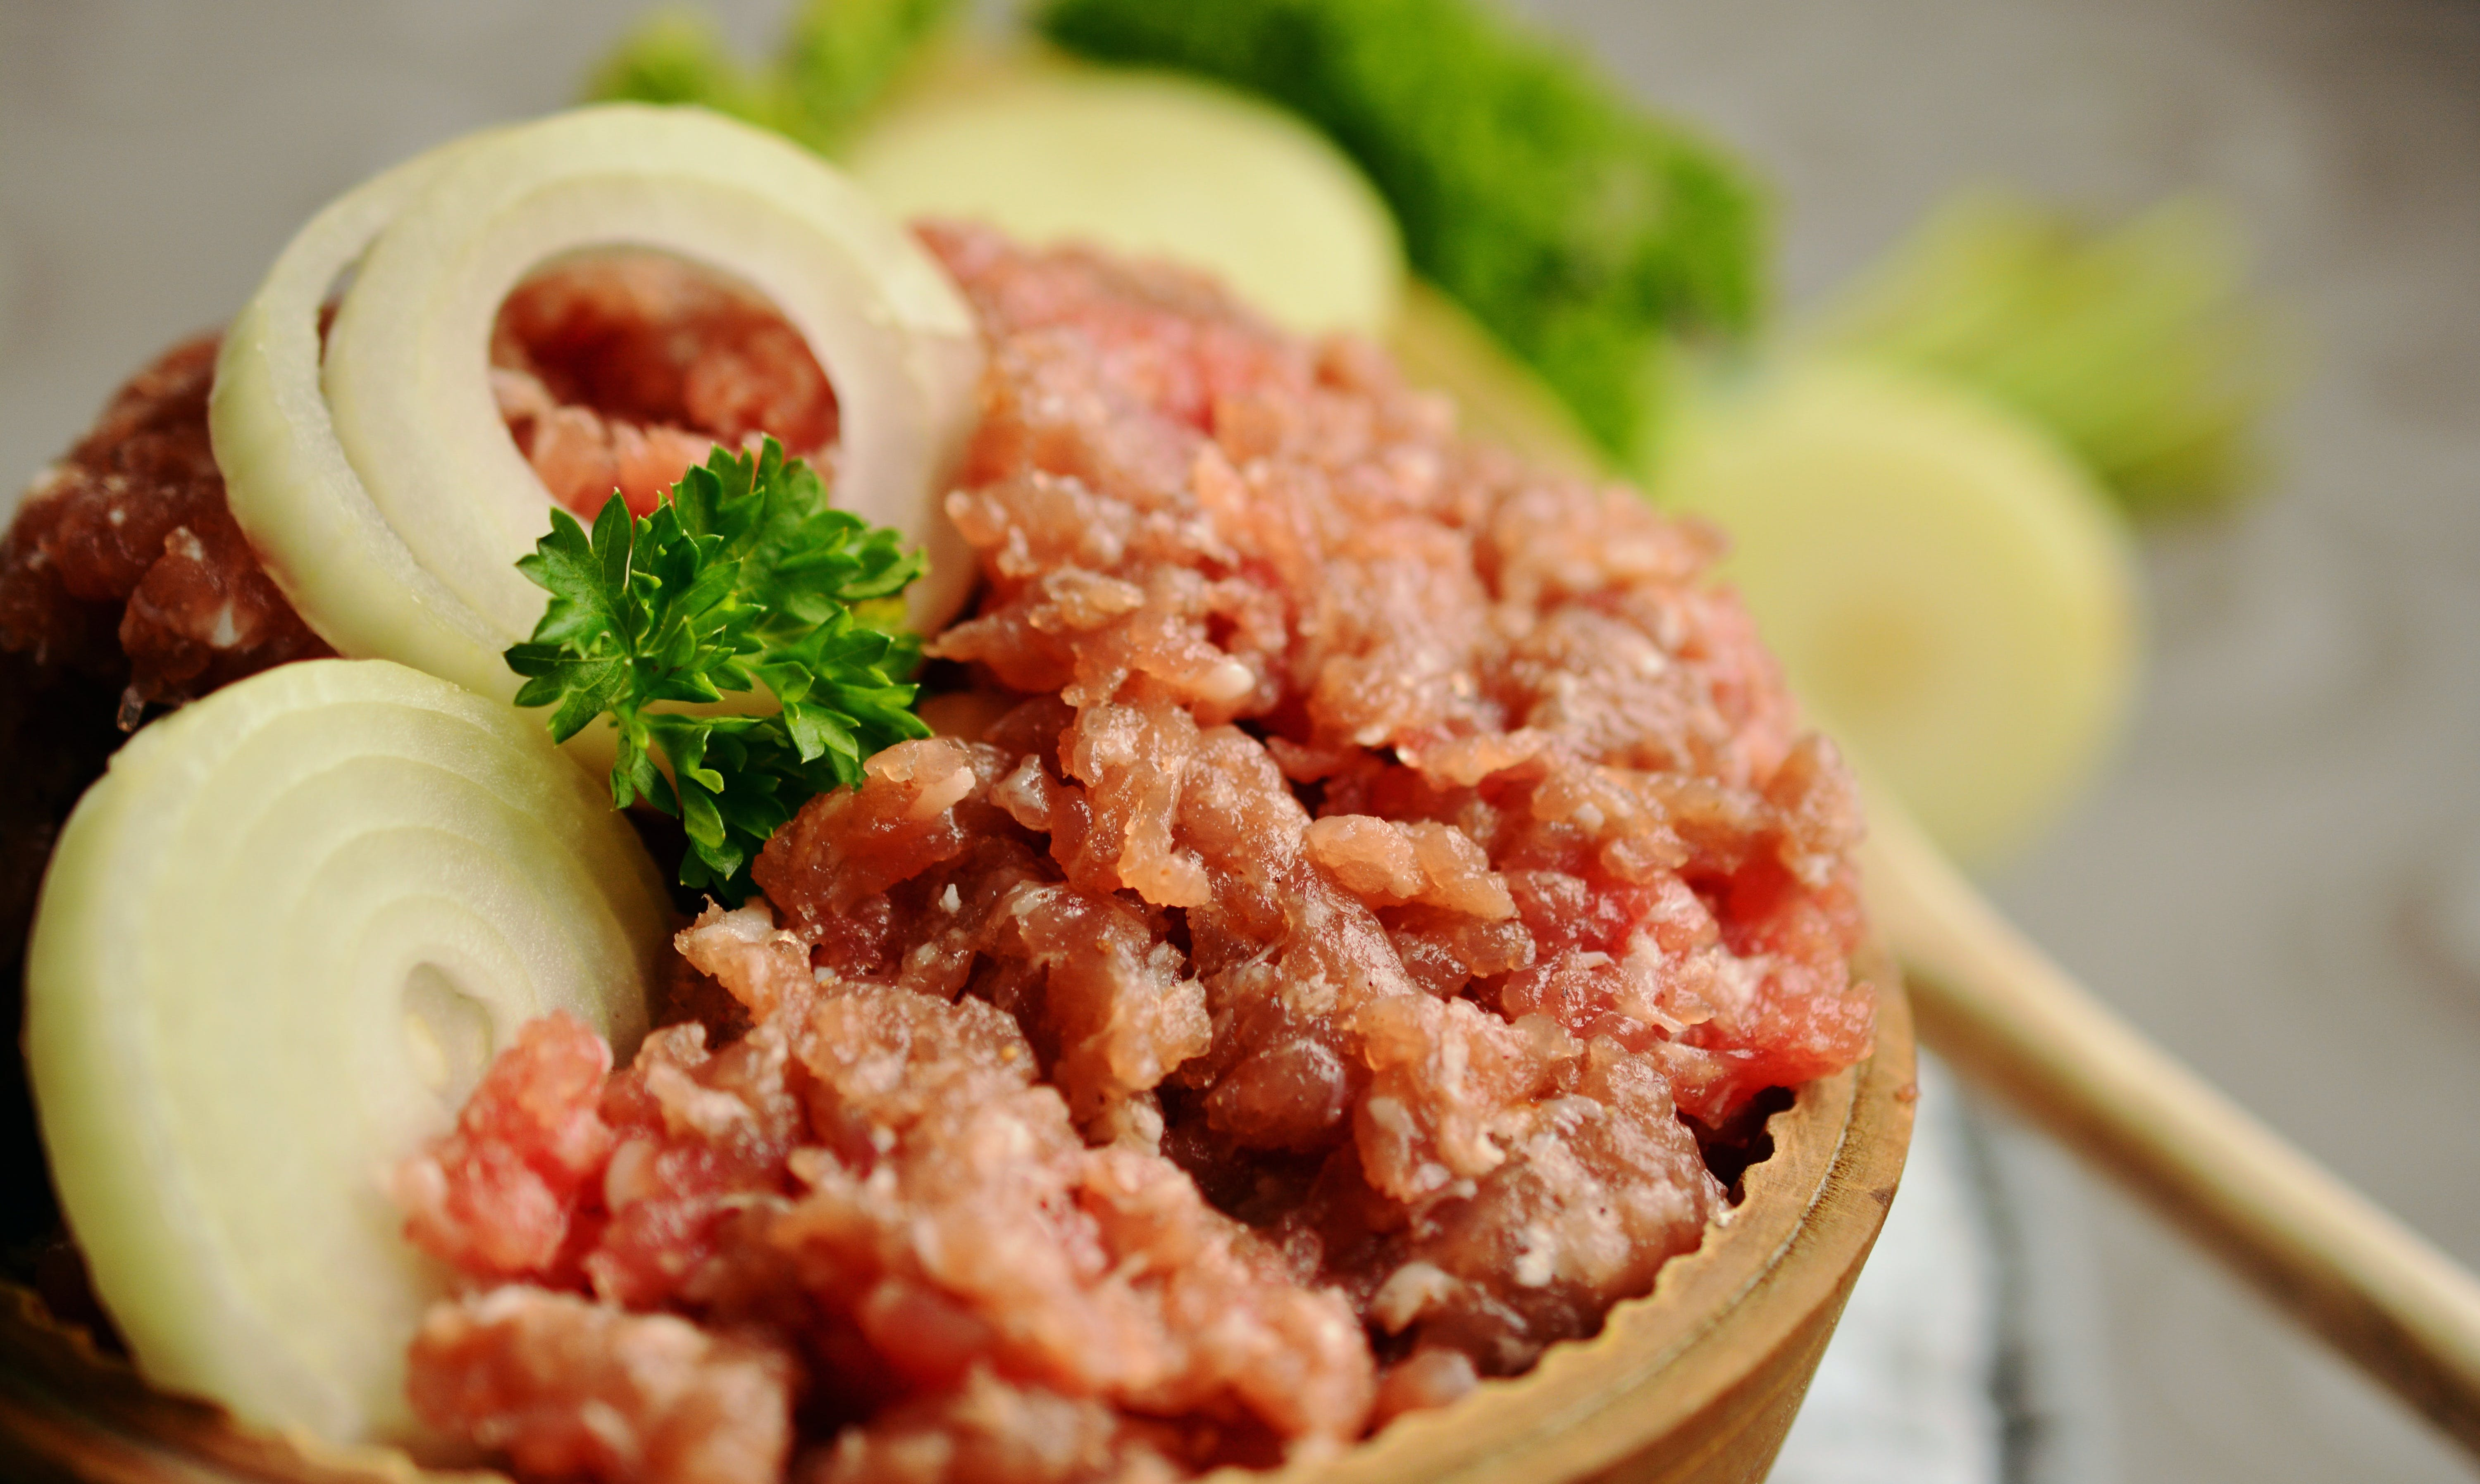 Ground Meat With Onions